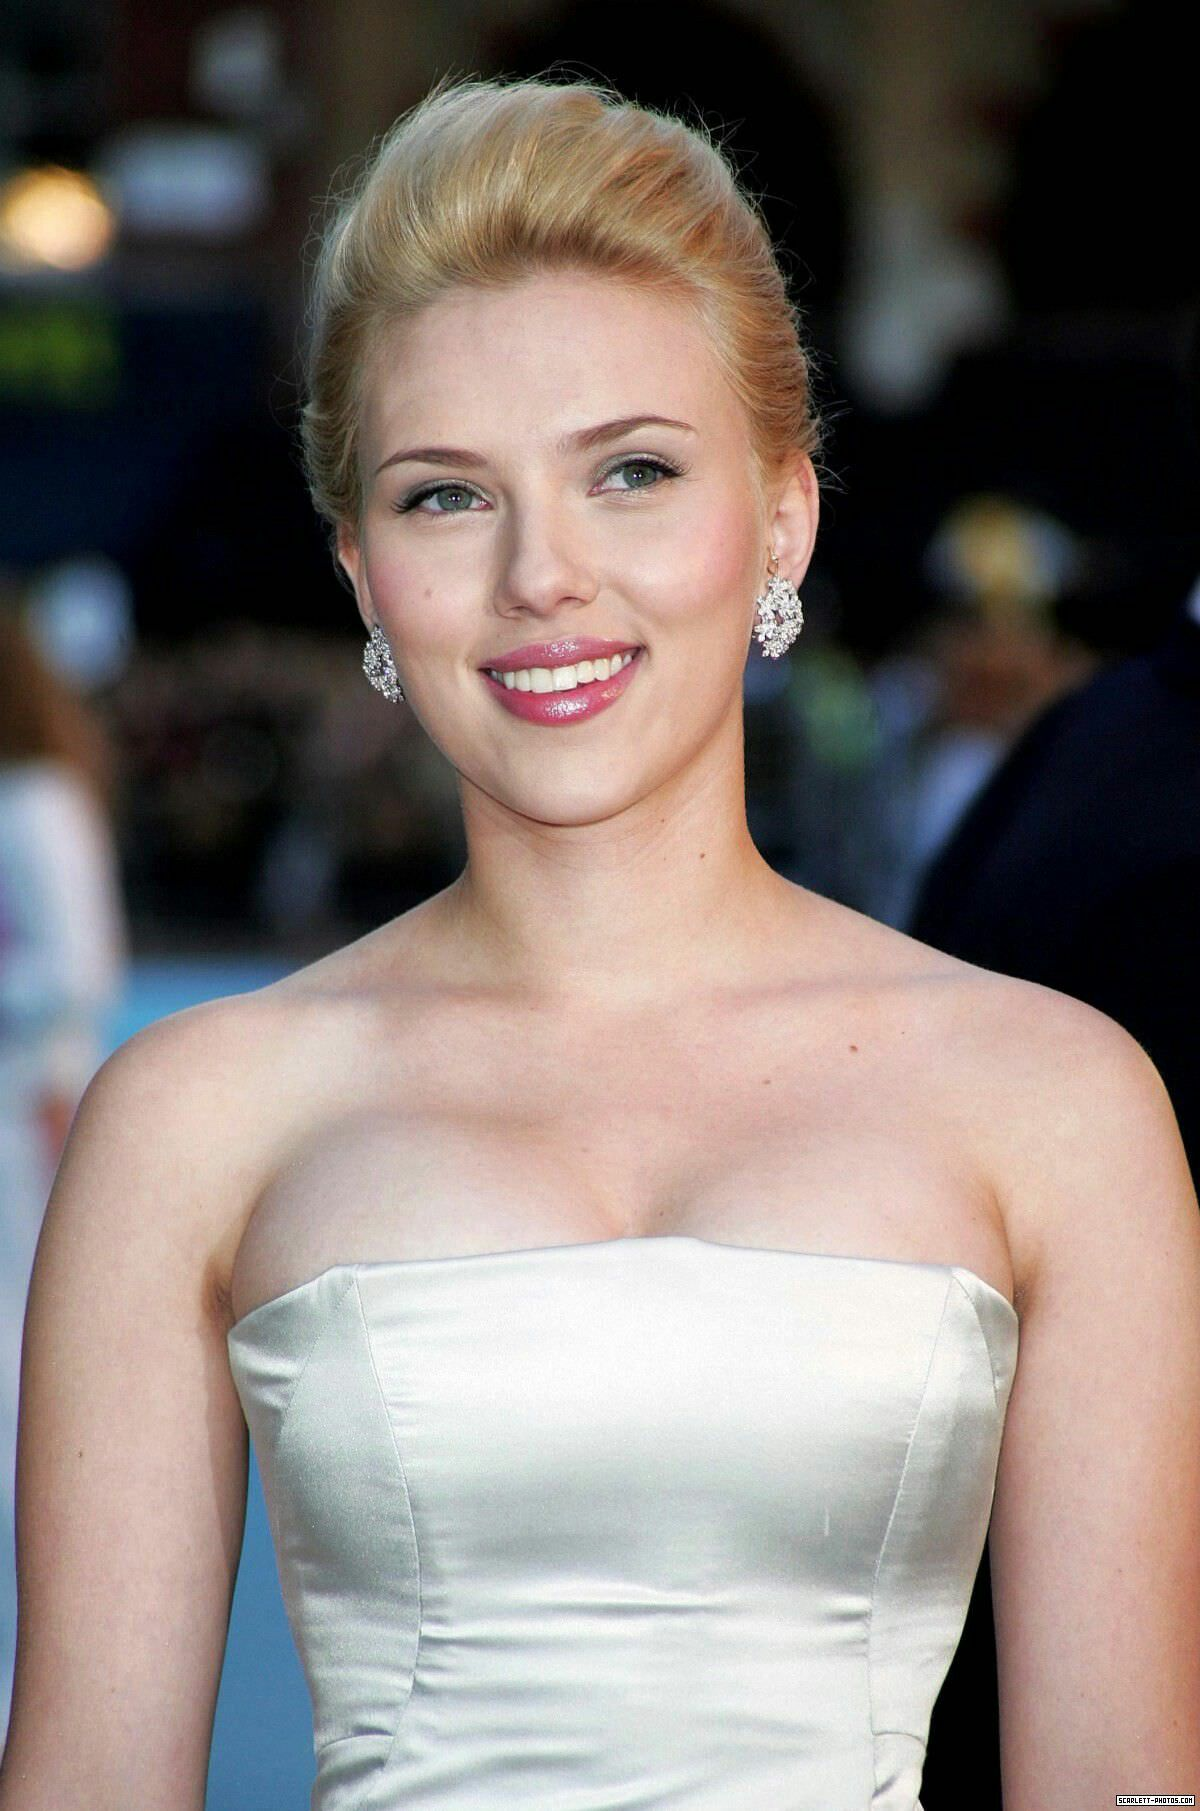 Scarlett Johansson Boobs-5011